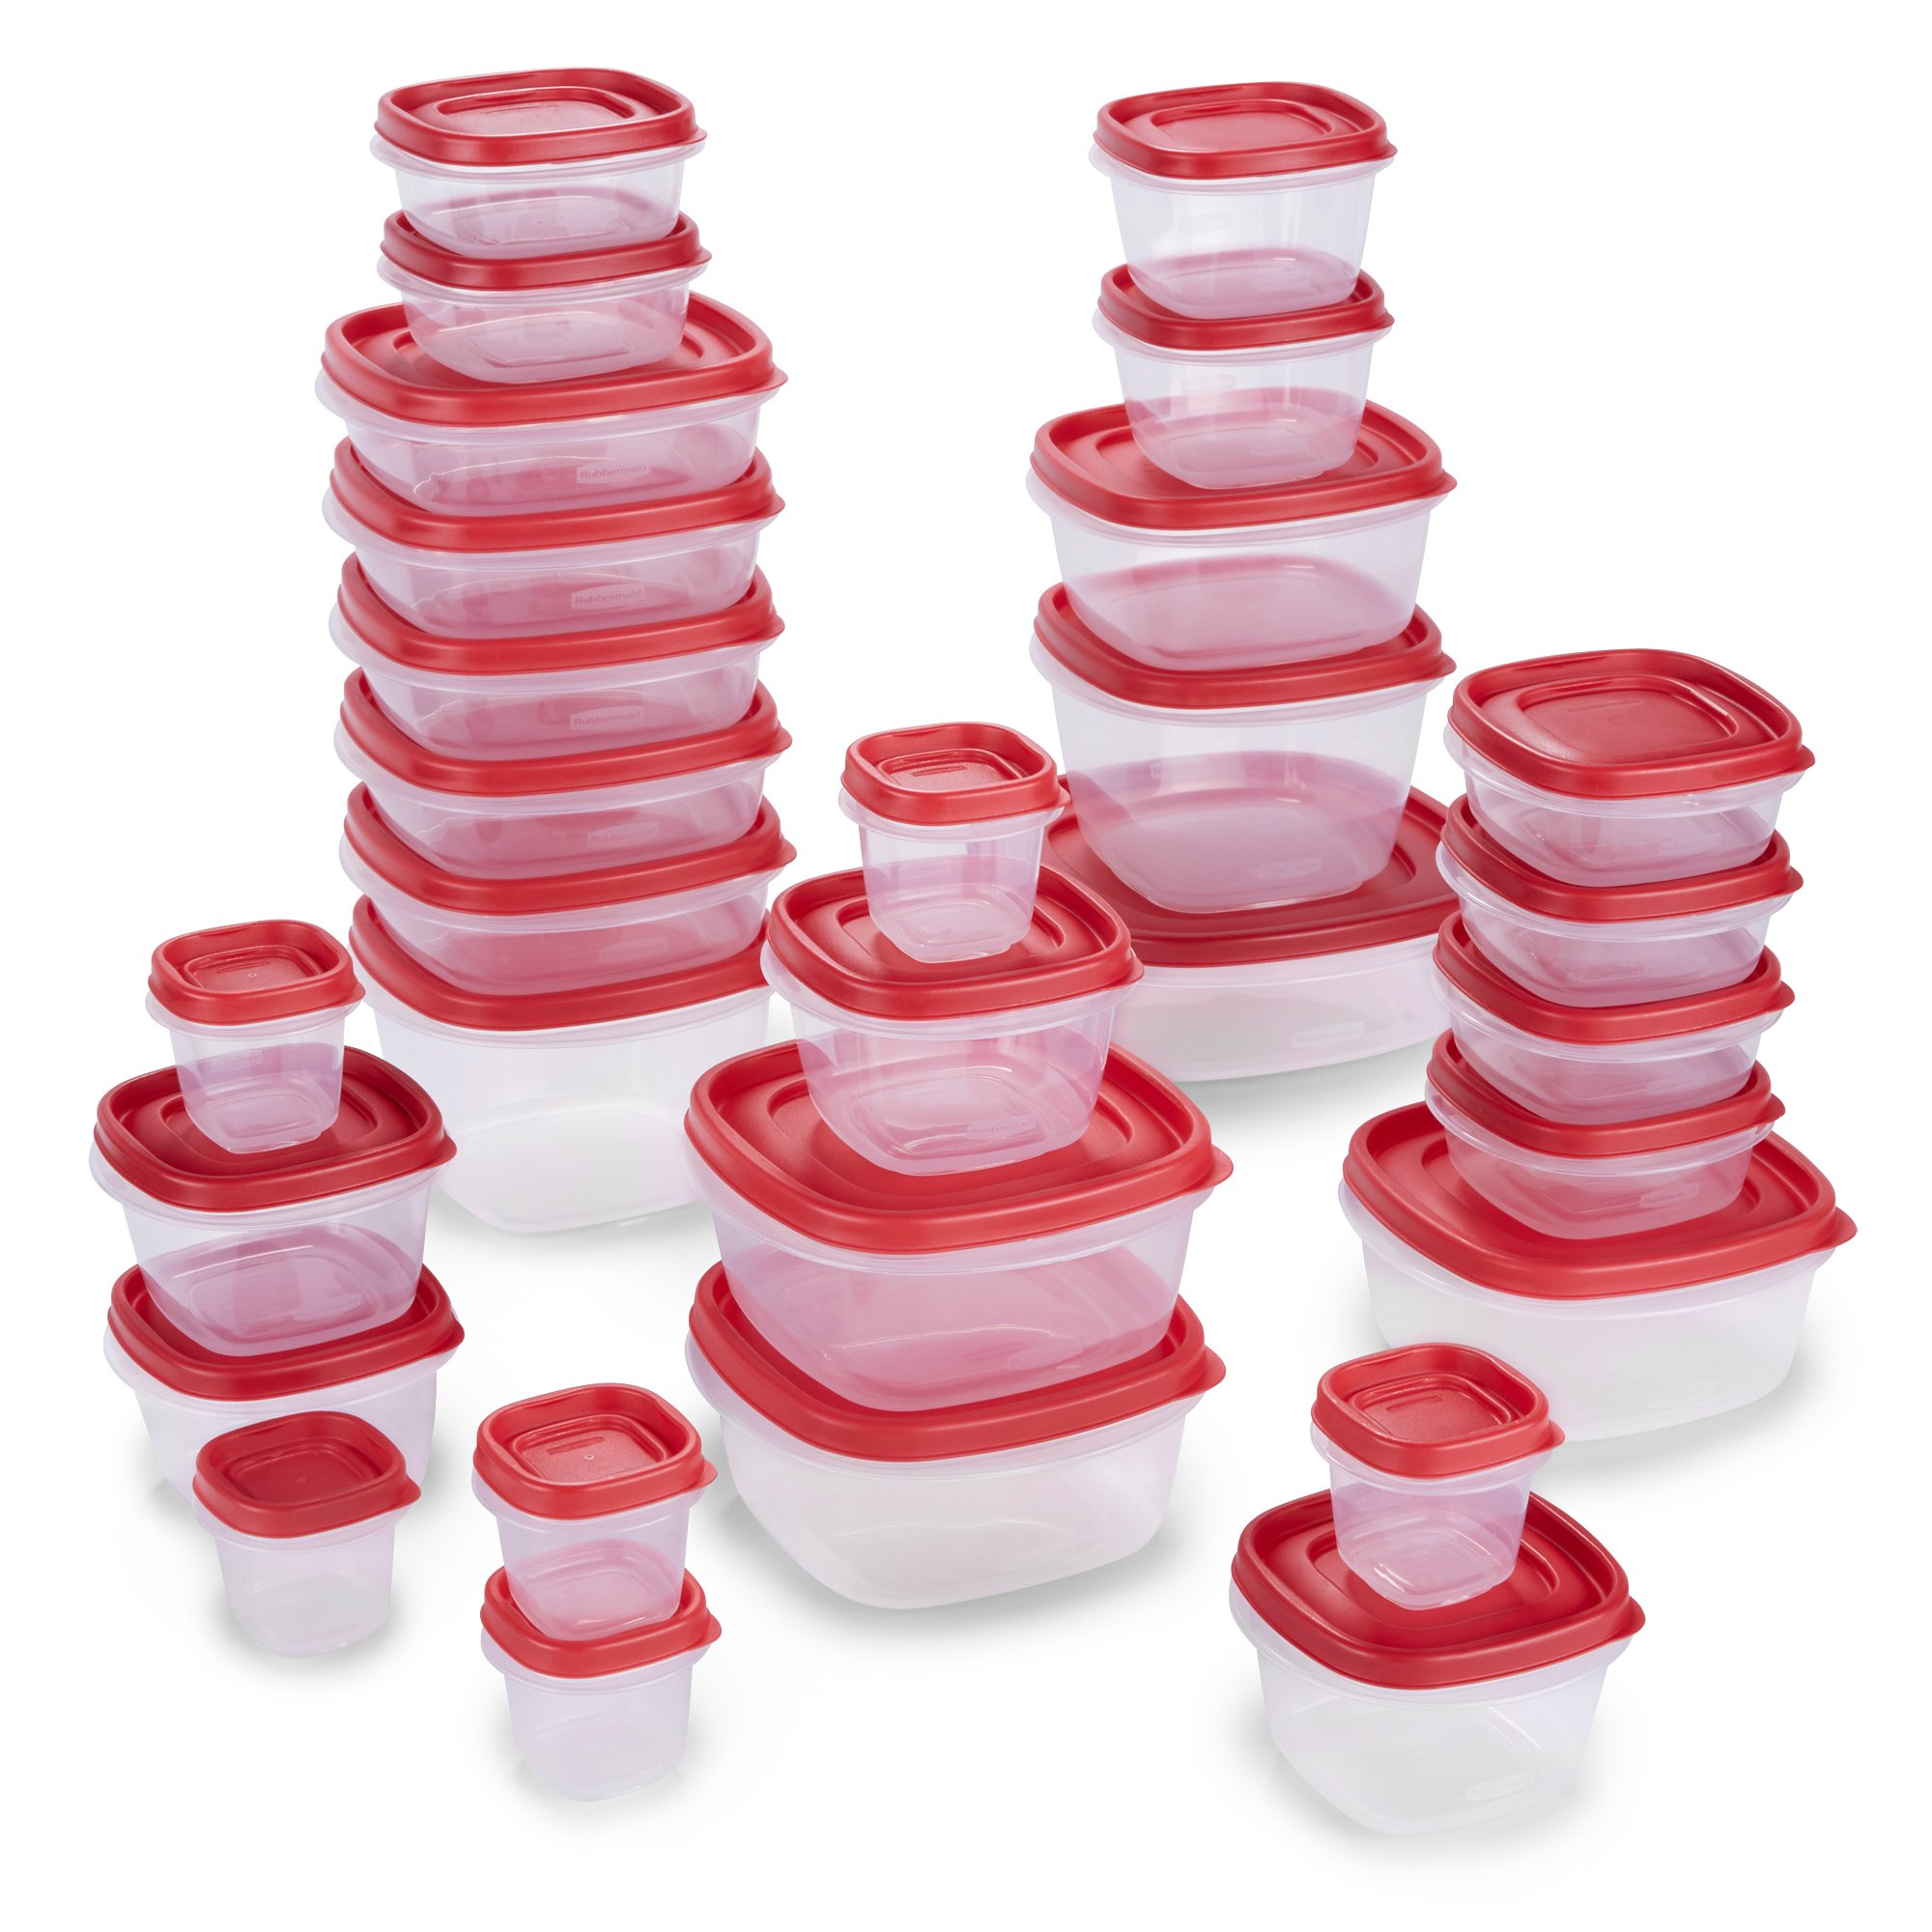 Rubbermaid 2065351 Easy Find Lids Food Storage Containers, 60 Piece, New Assortment, Racer Red